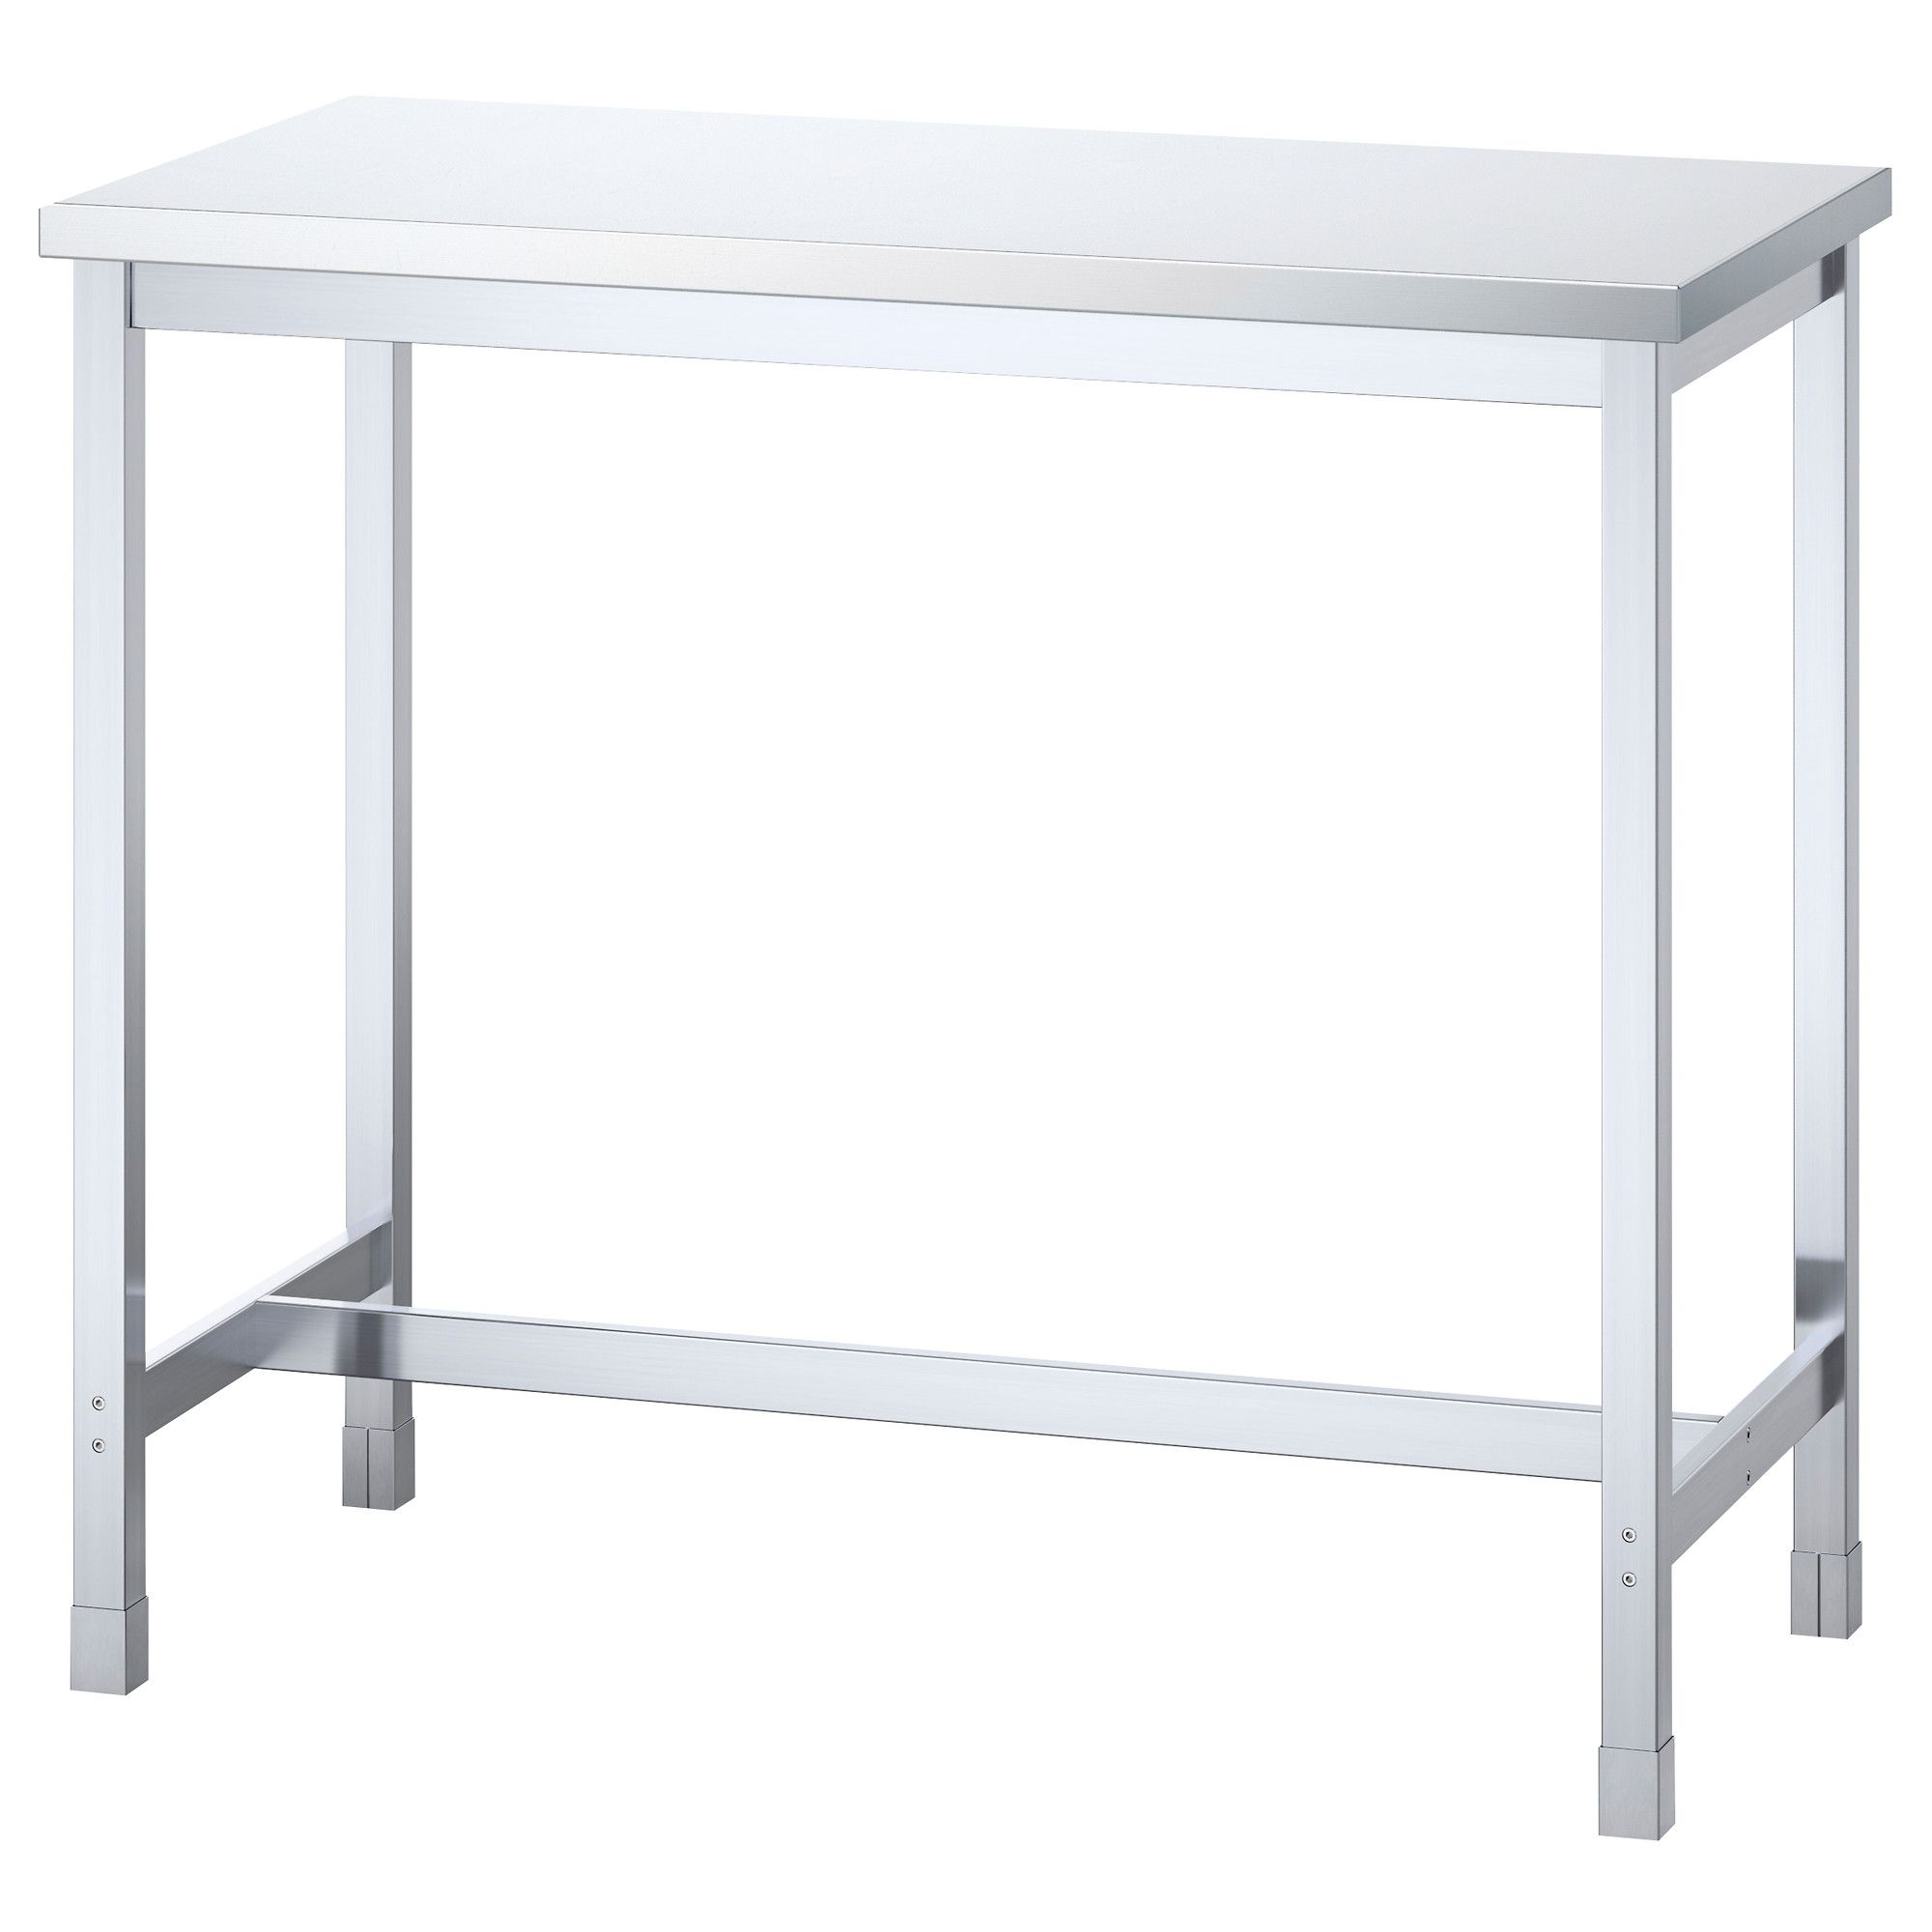 Table Bistrot Inox Ikea Utby Bar Table Stainless Steel Ikea For Dan 39s Desk